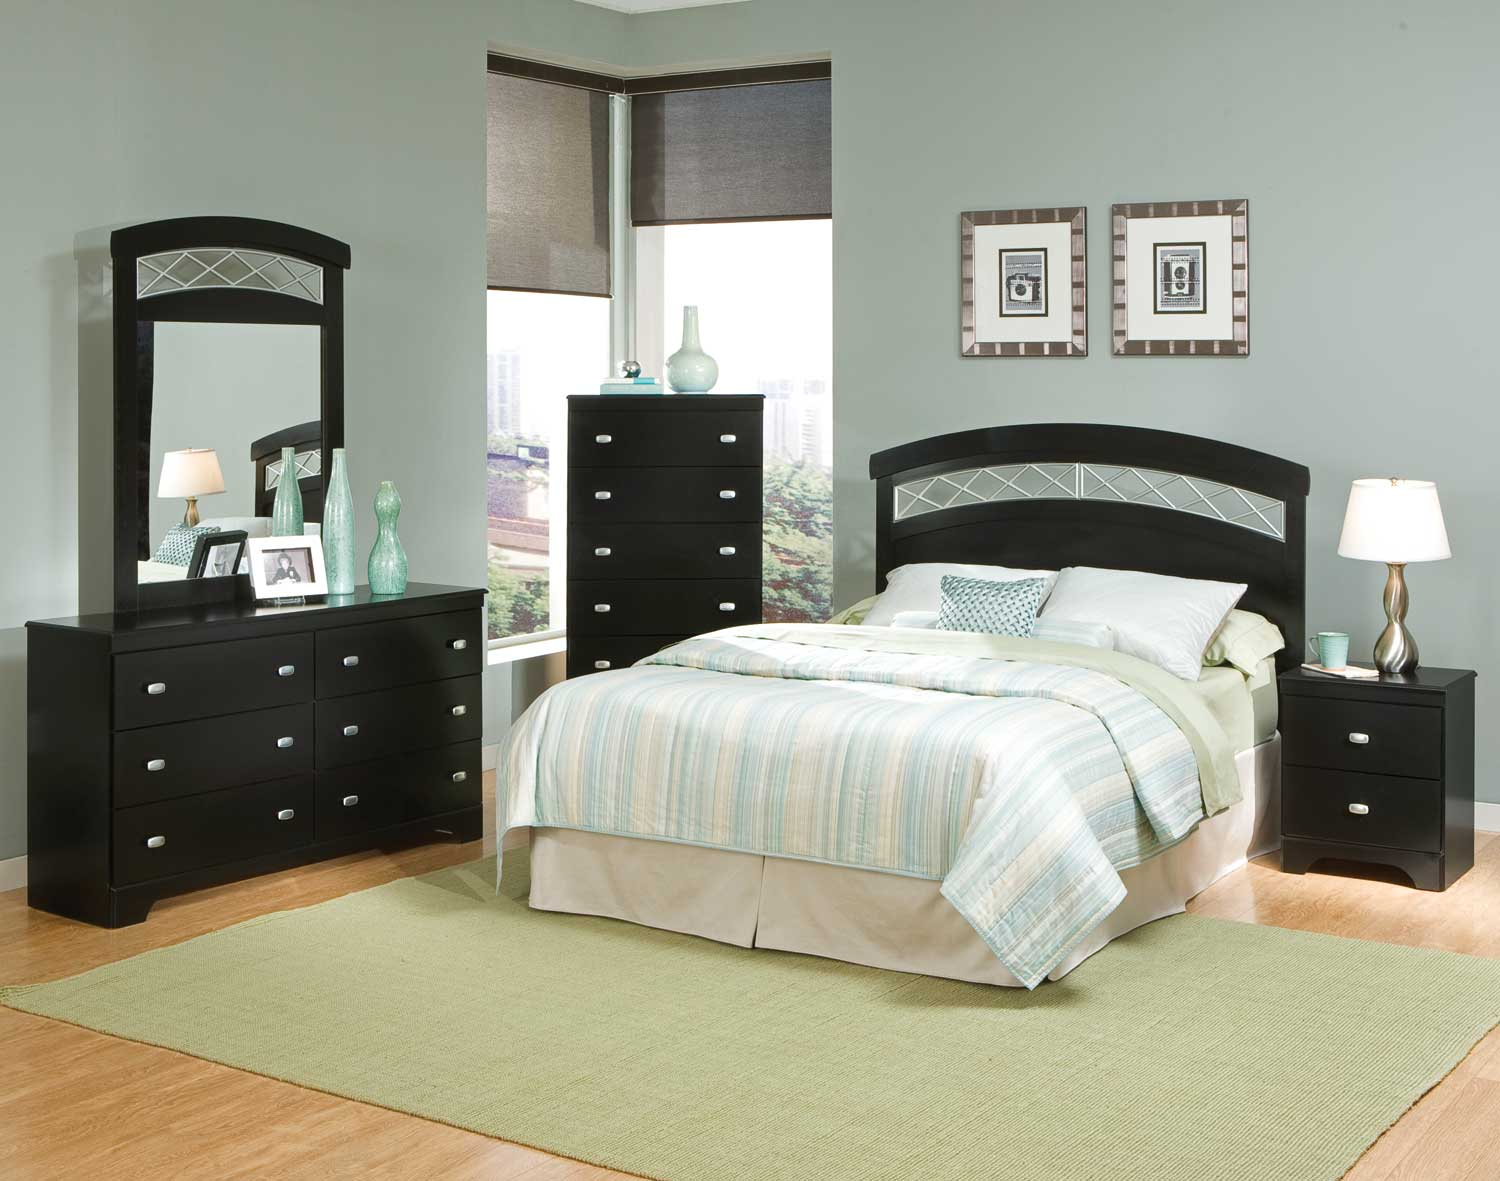 Kith Furniture Bradley Bedroom Set